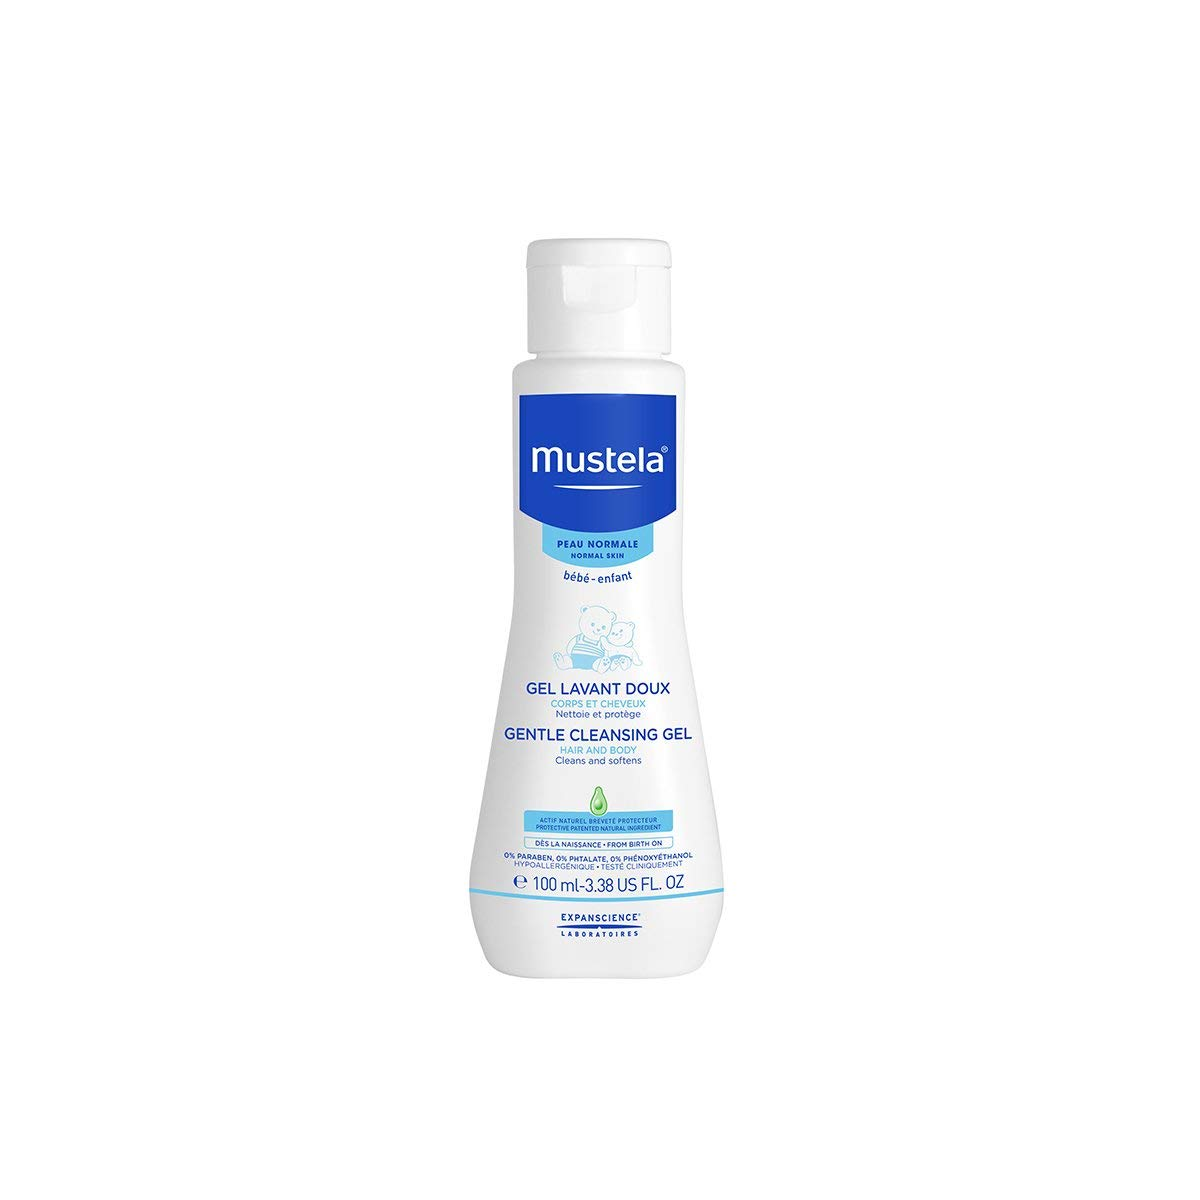 Mustela Newborn Arrival Gift Set - Baby Skincare & Bath Time Essentials - Natural & Plant Based - 5 Items Set